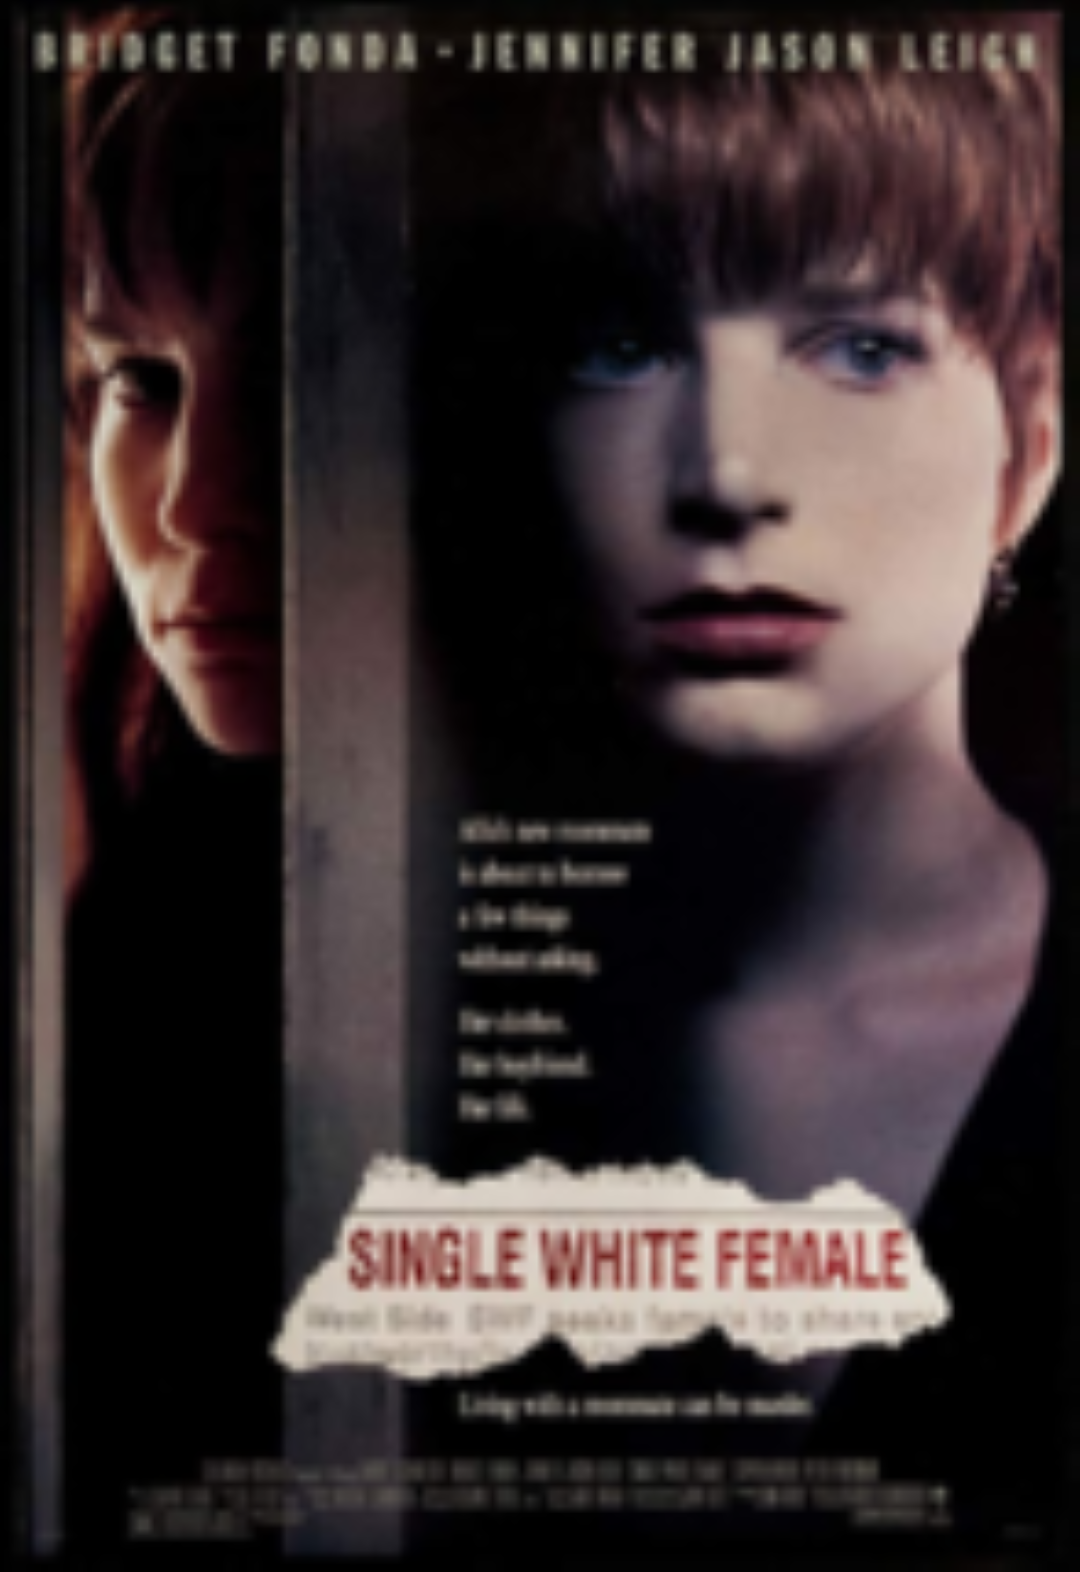 Single White Female Vhs